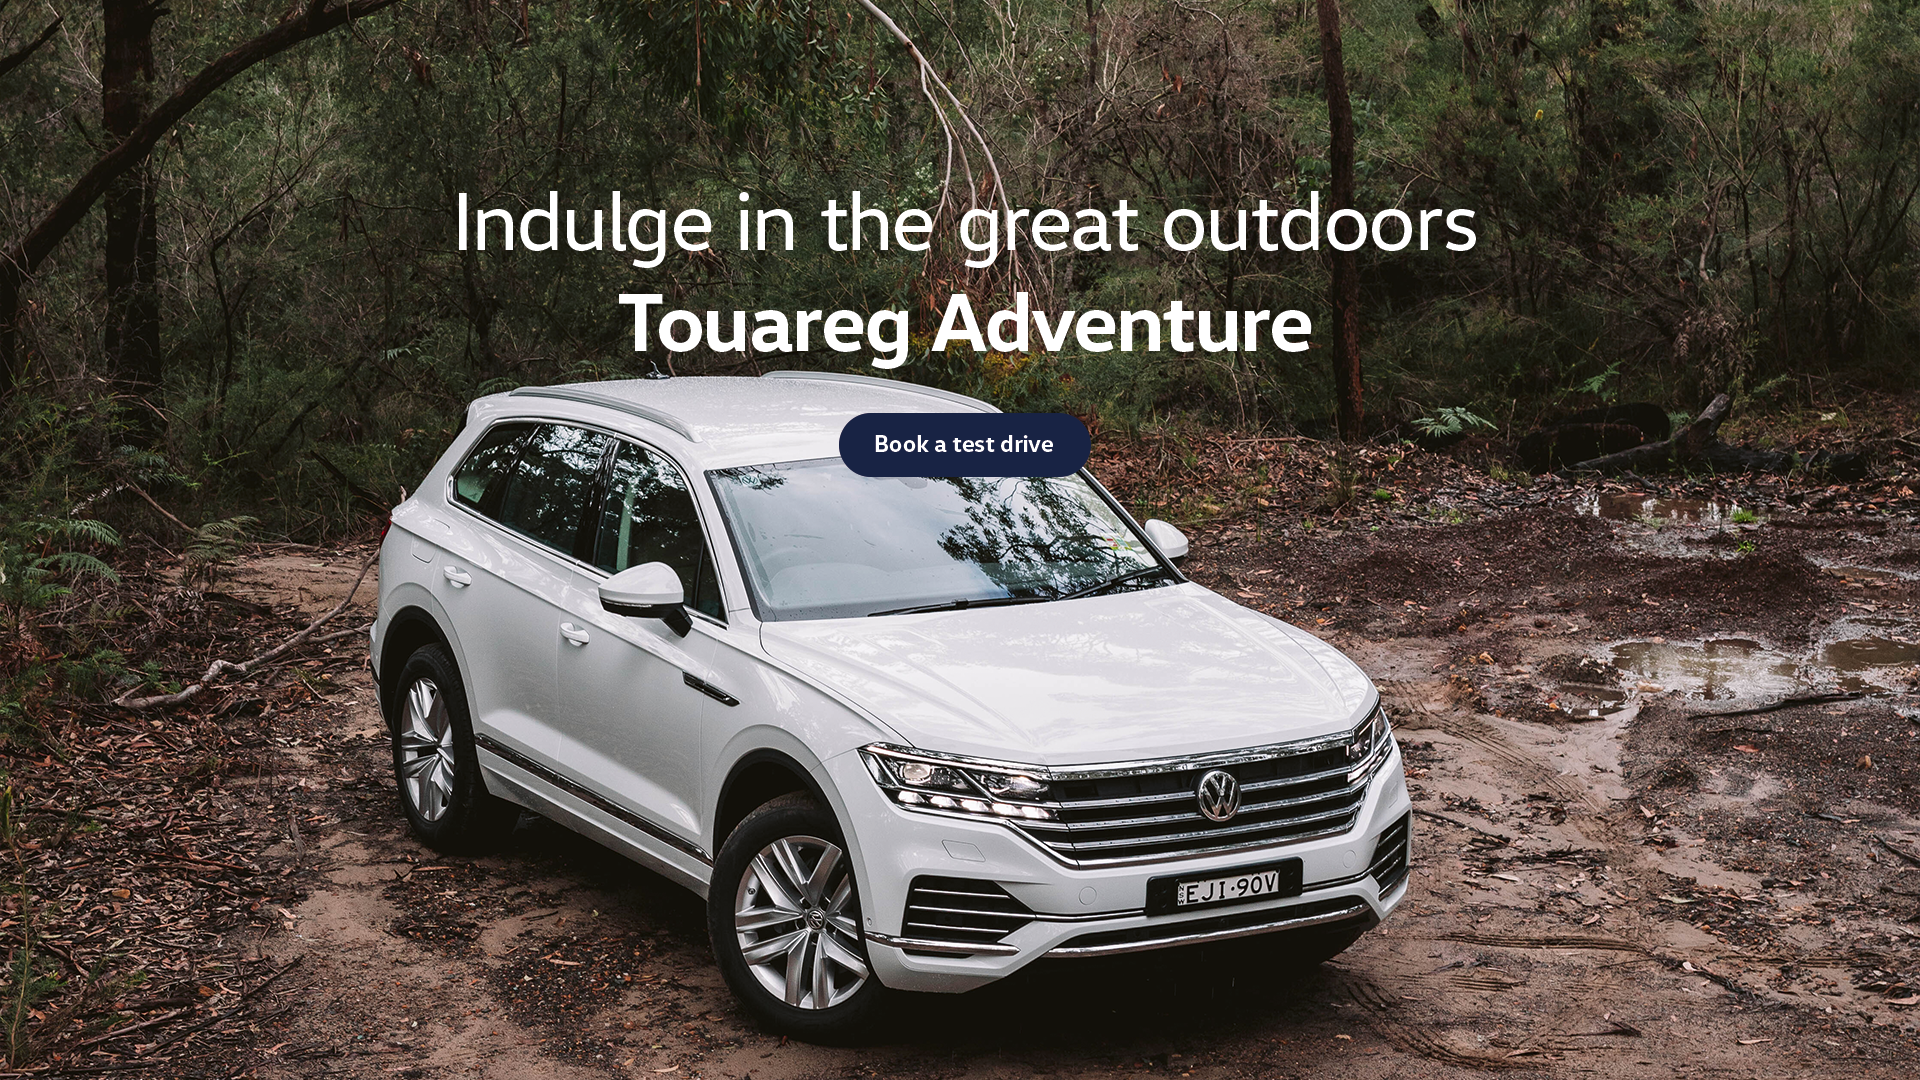 Volkswagen Touareg Adventure. Indulge in the great outdoors. Test drive today at Westpoint Volkswagen.